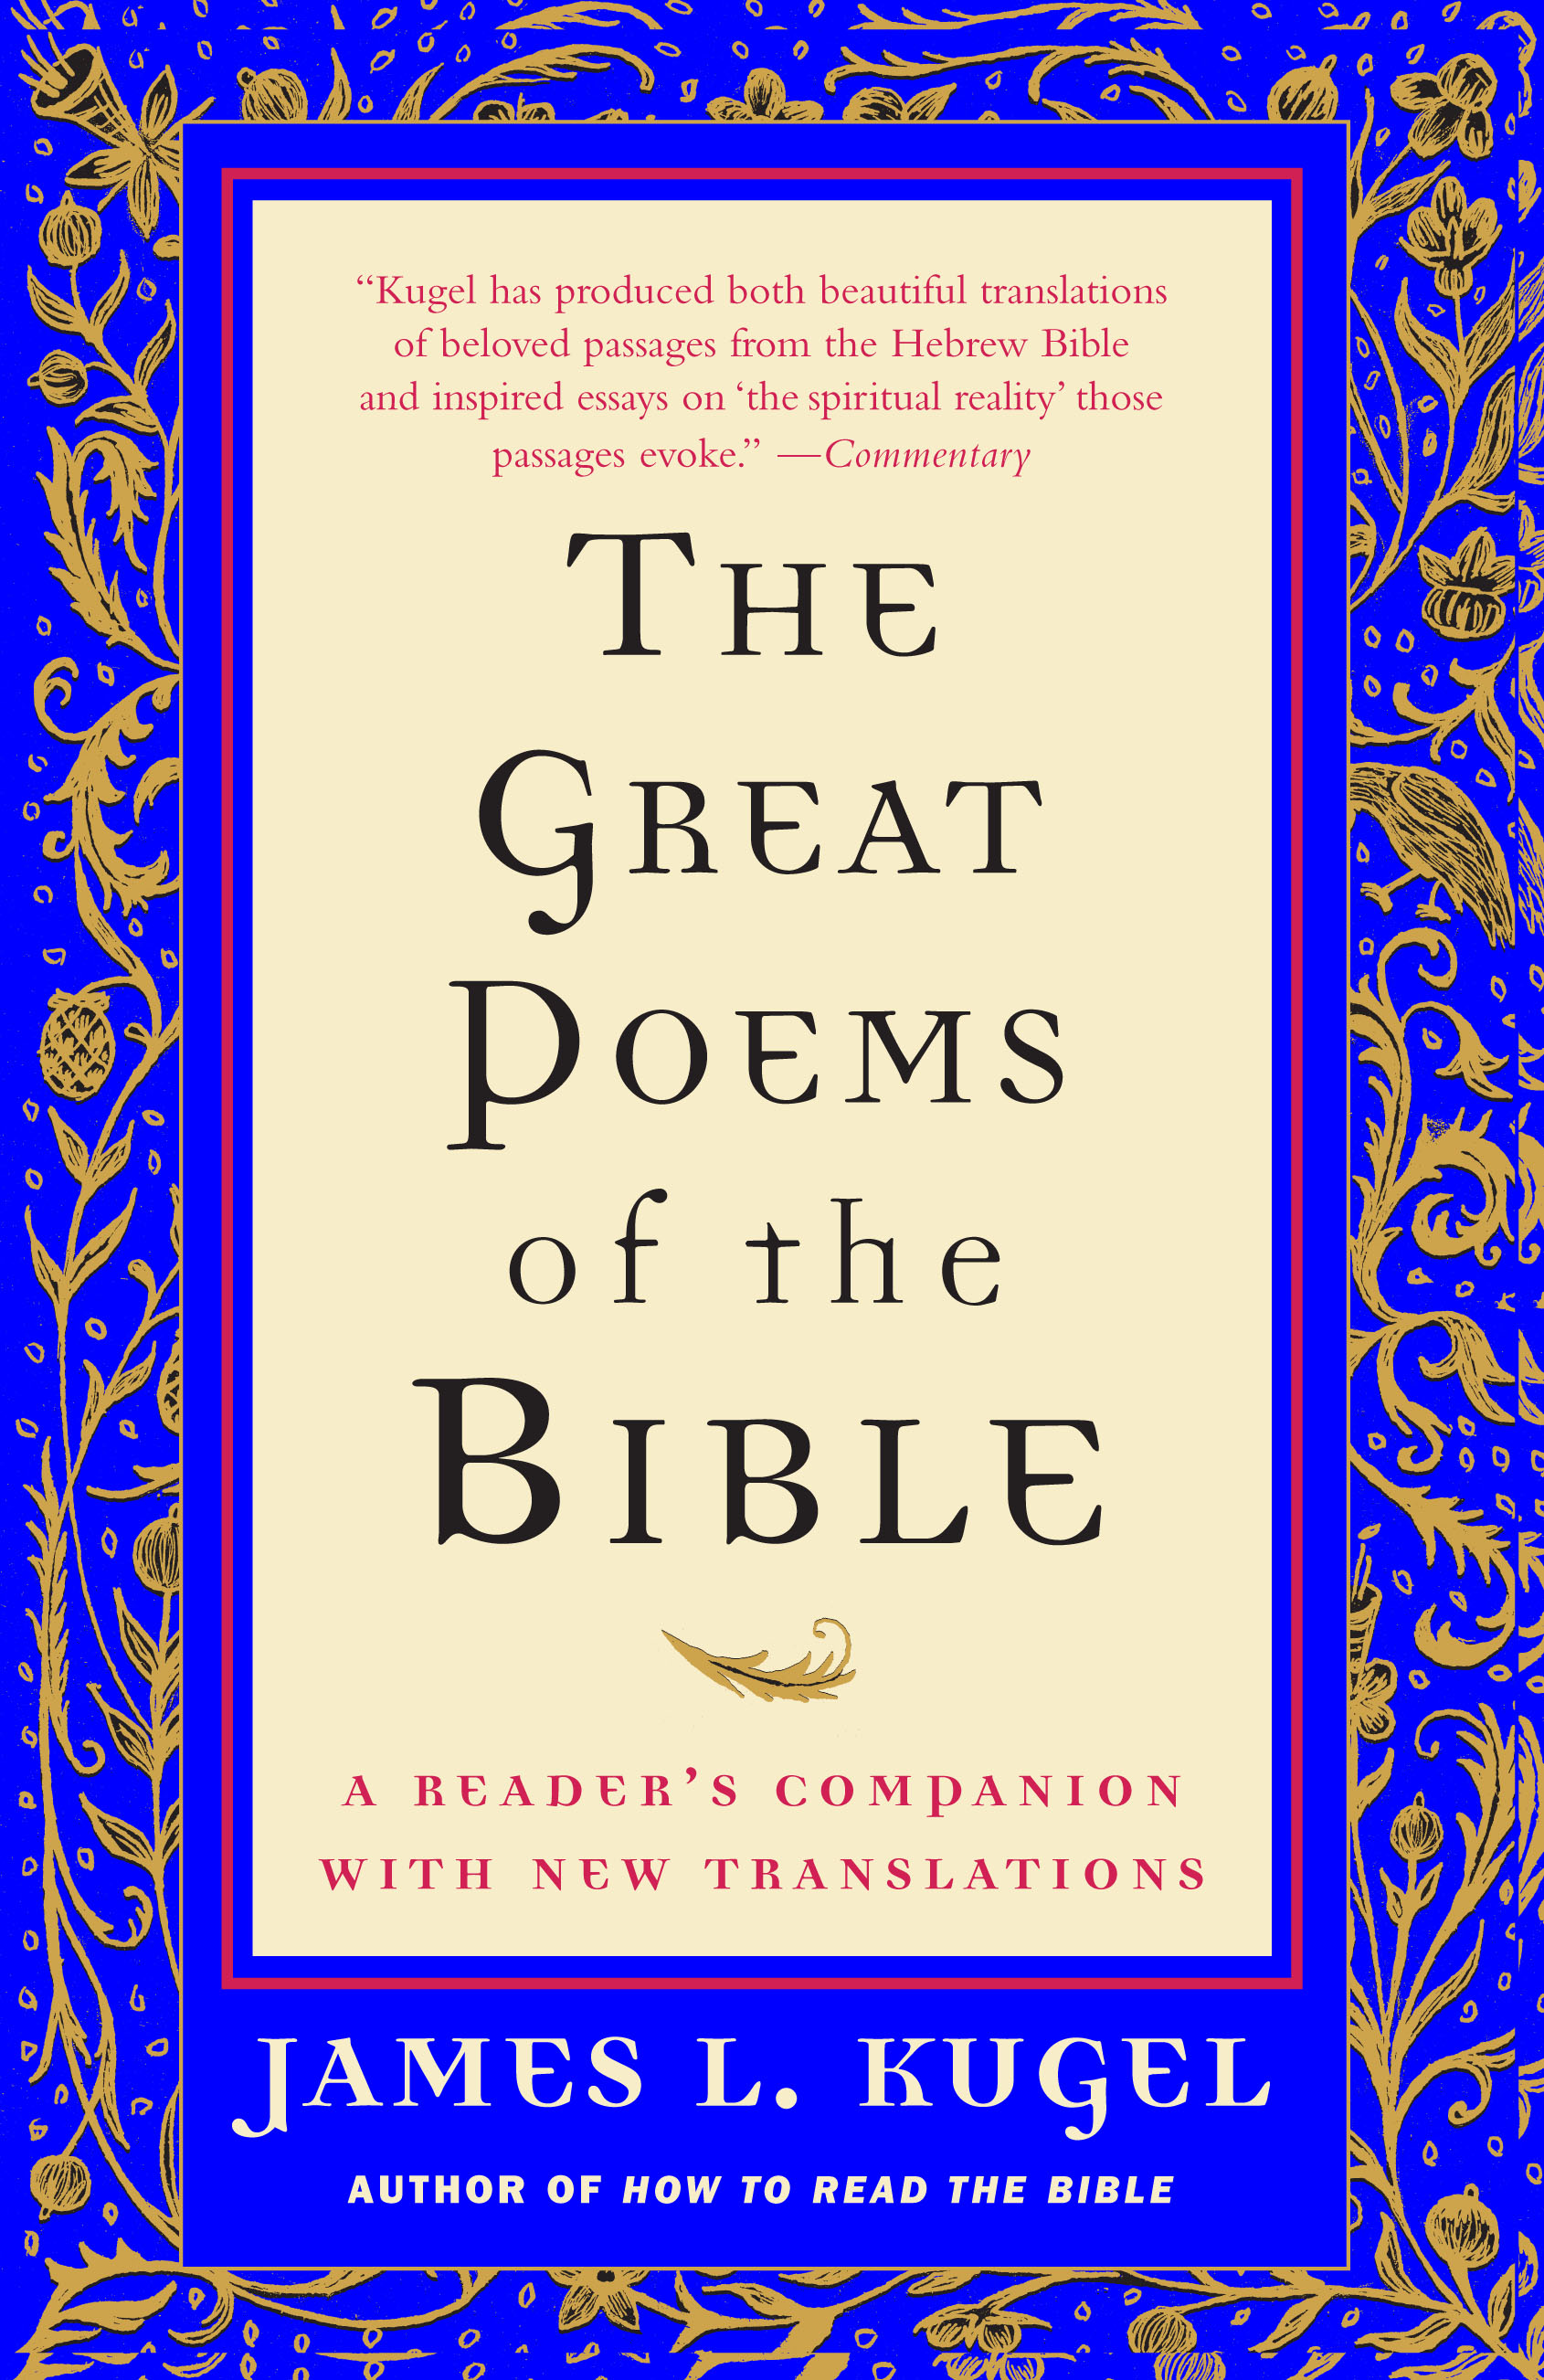 the great poems of the bible book by james l kugel official  the great poems of the bible book by james l kugel official publisher page simon schuster